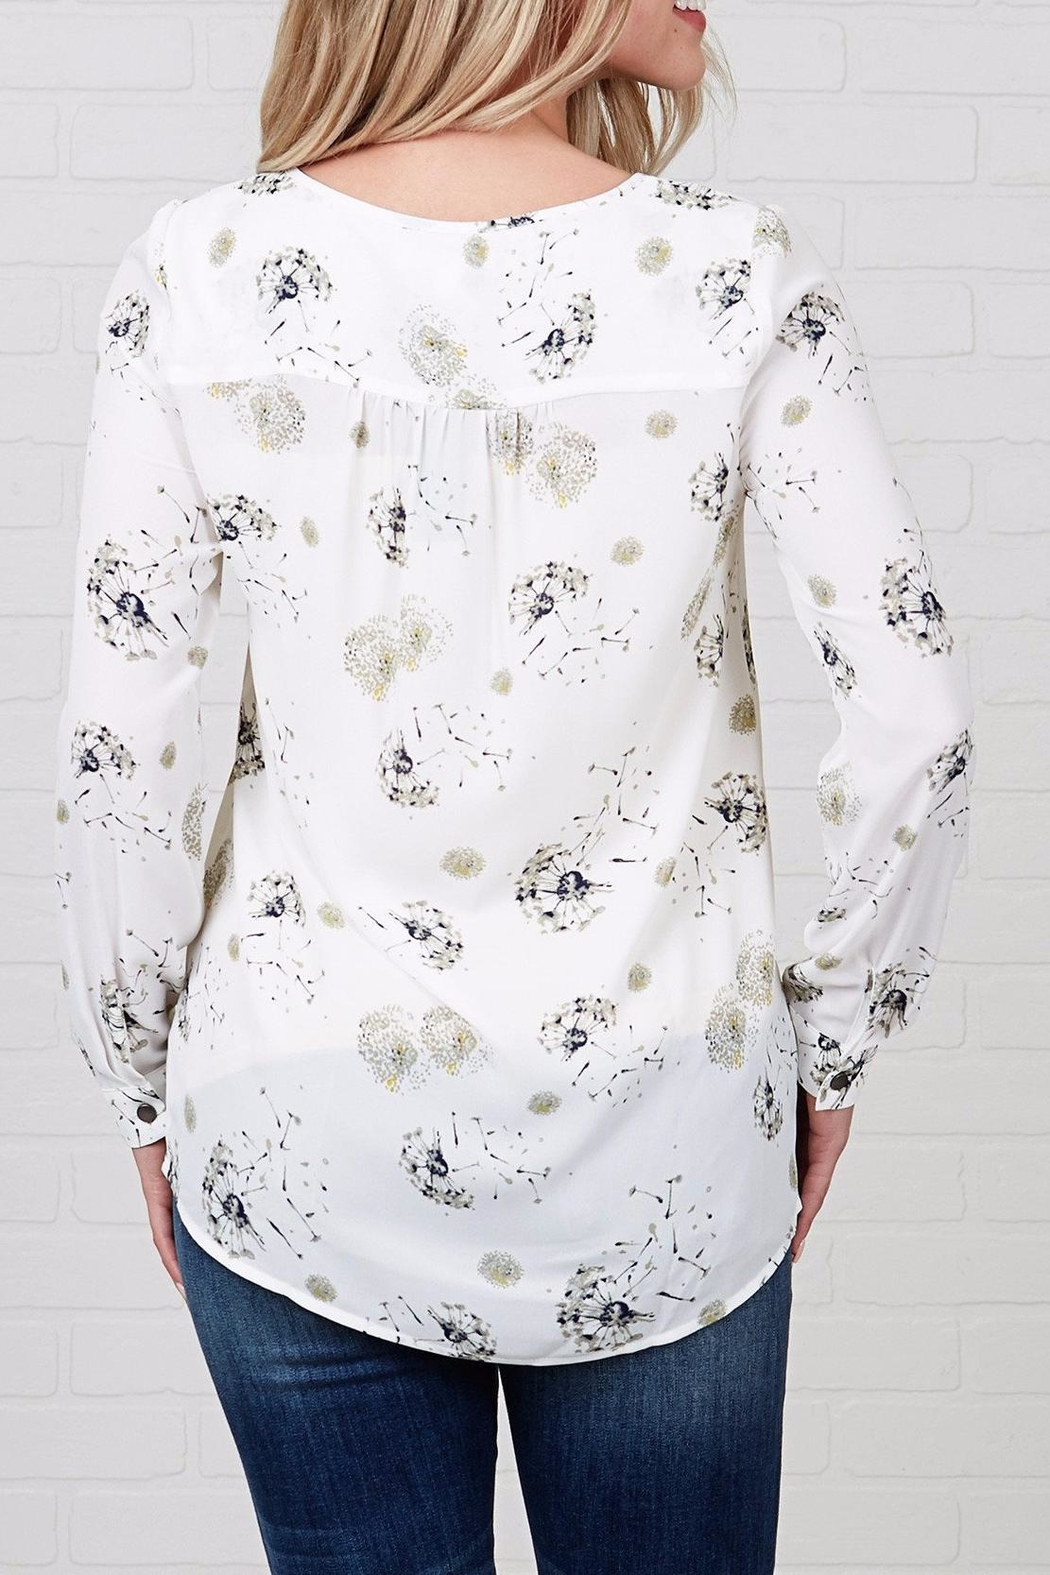 Downeast Basics Garden Love Blouse - Front Full Image